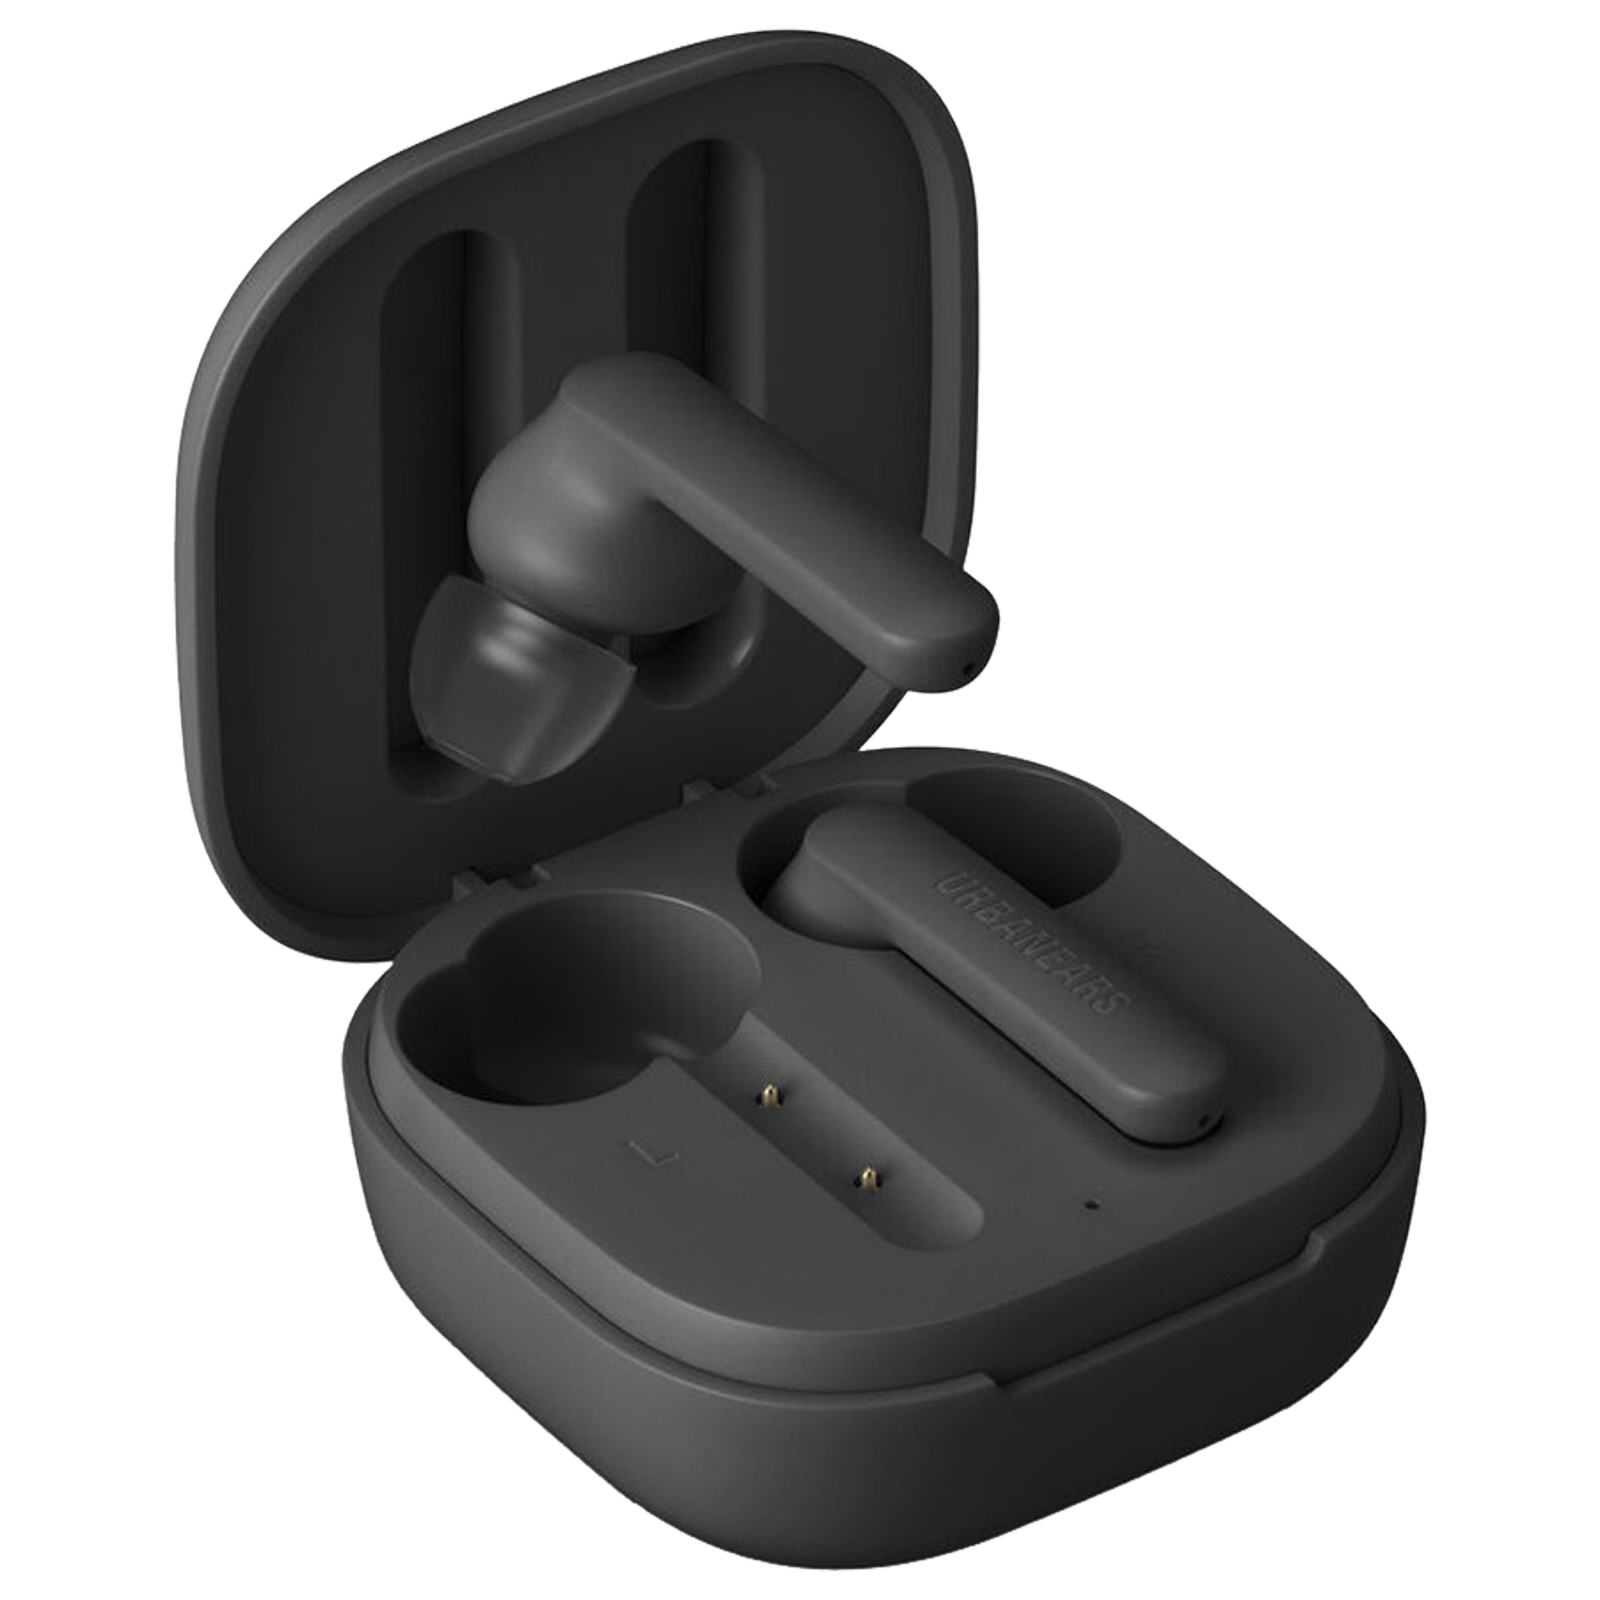 Urbanears Alby In-Ear Truly Wireless Earbuds with Mic (Bluetooth 5.0, Voice Assistant Support, UE-ALBY-BLK, Charcoal Black)_1